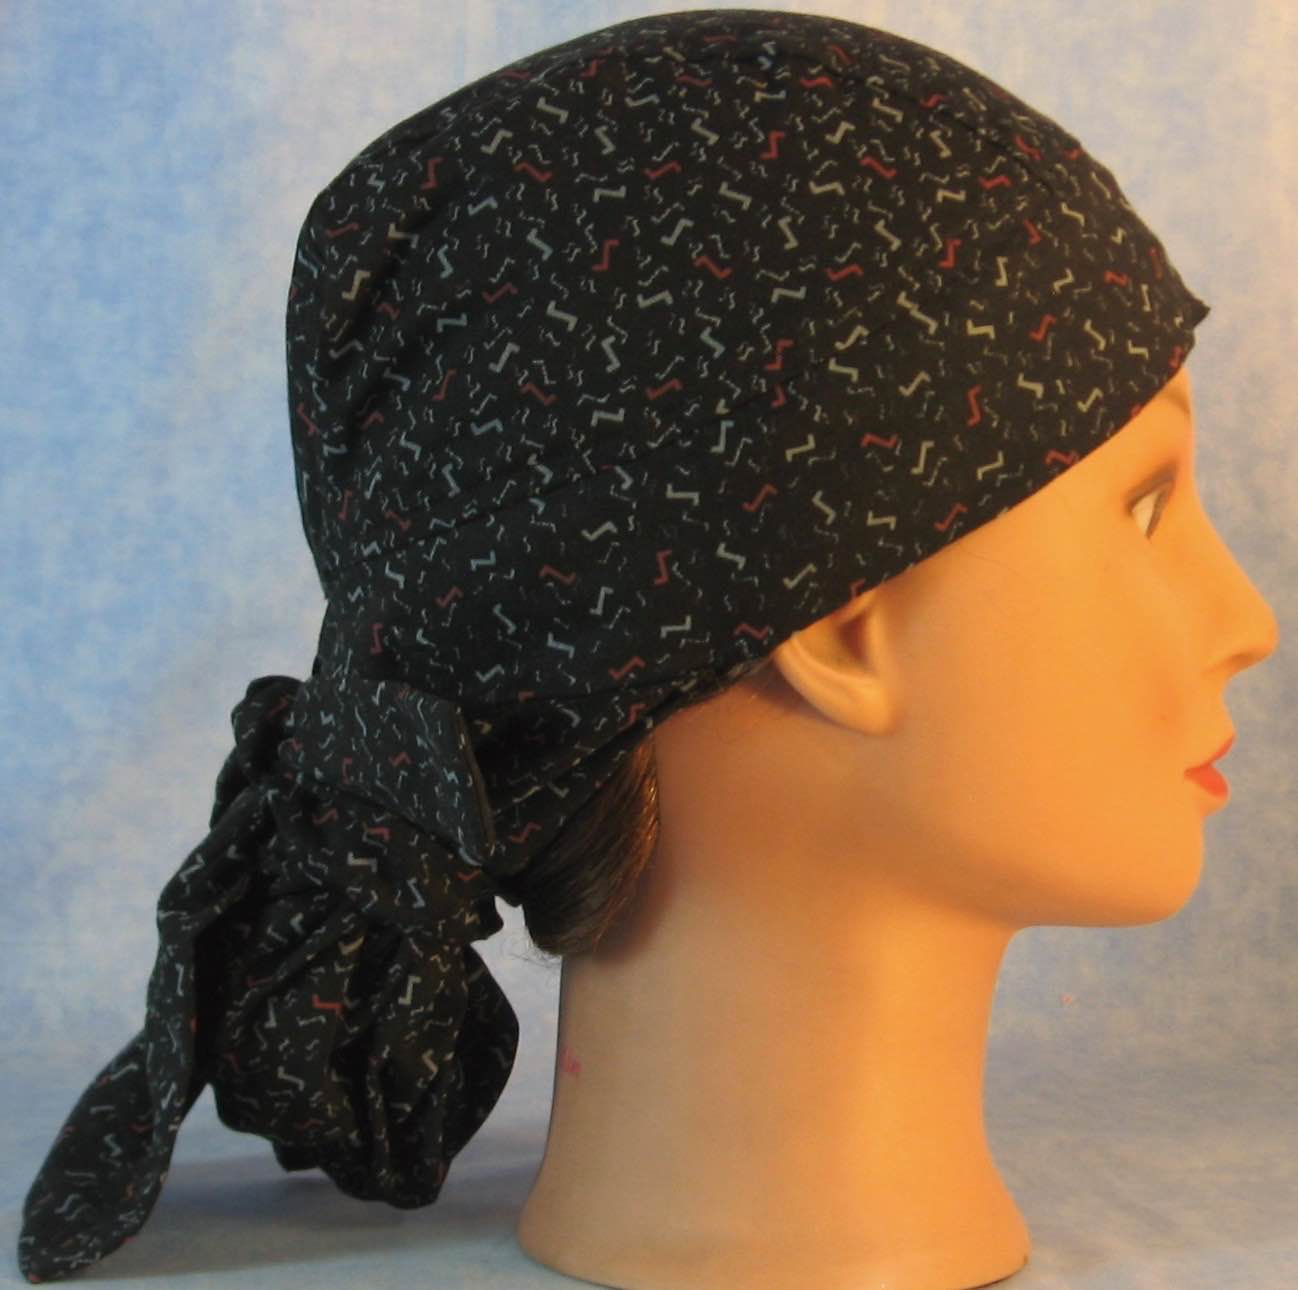 Hair Bag Do Rag in Red Gray Zs on Black - Adult M-XL